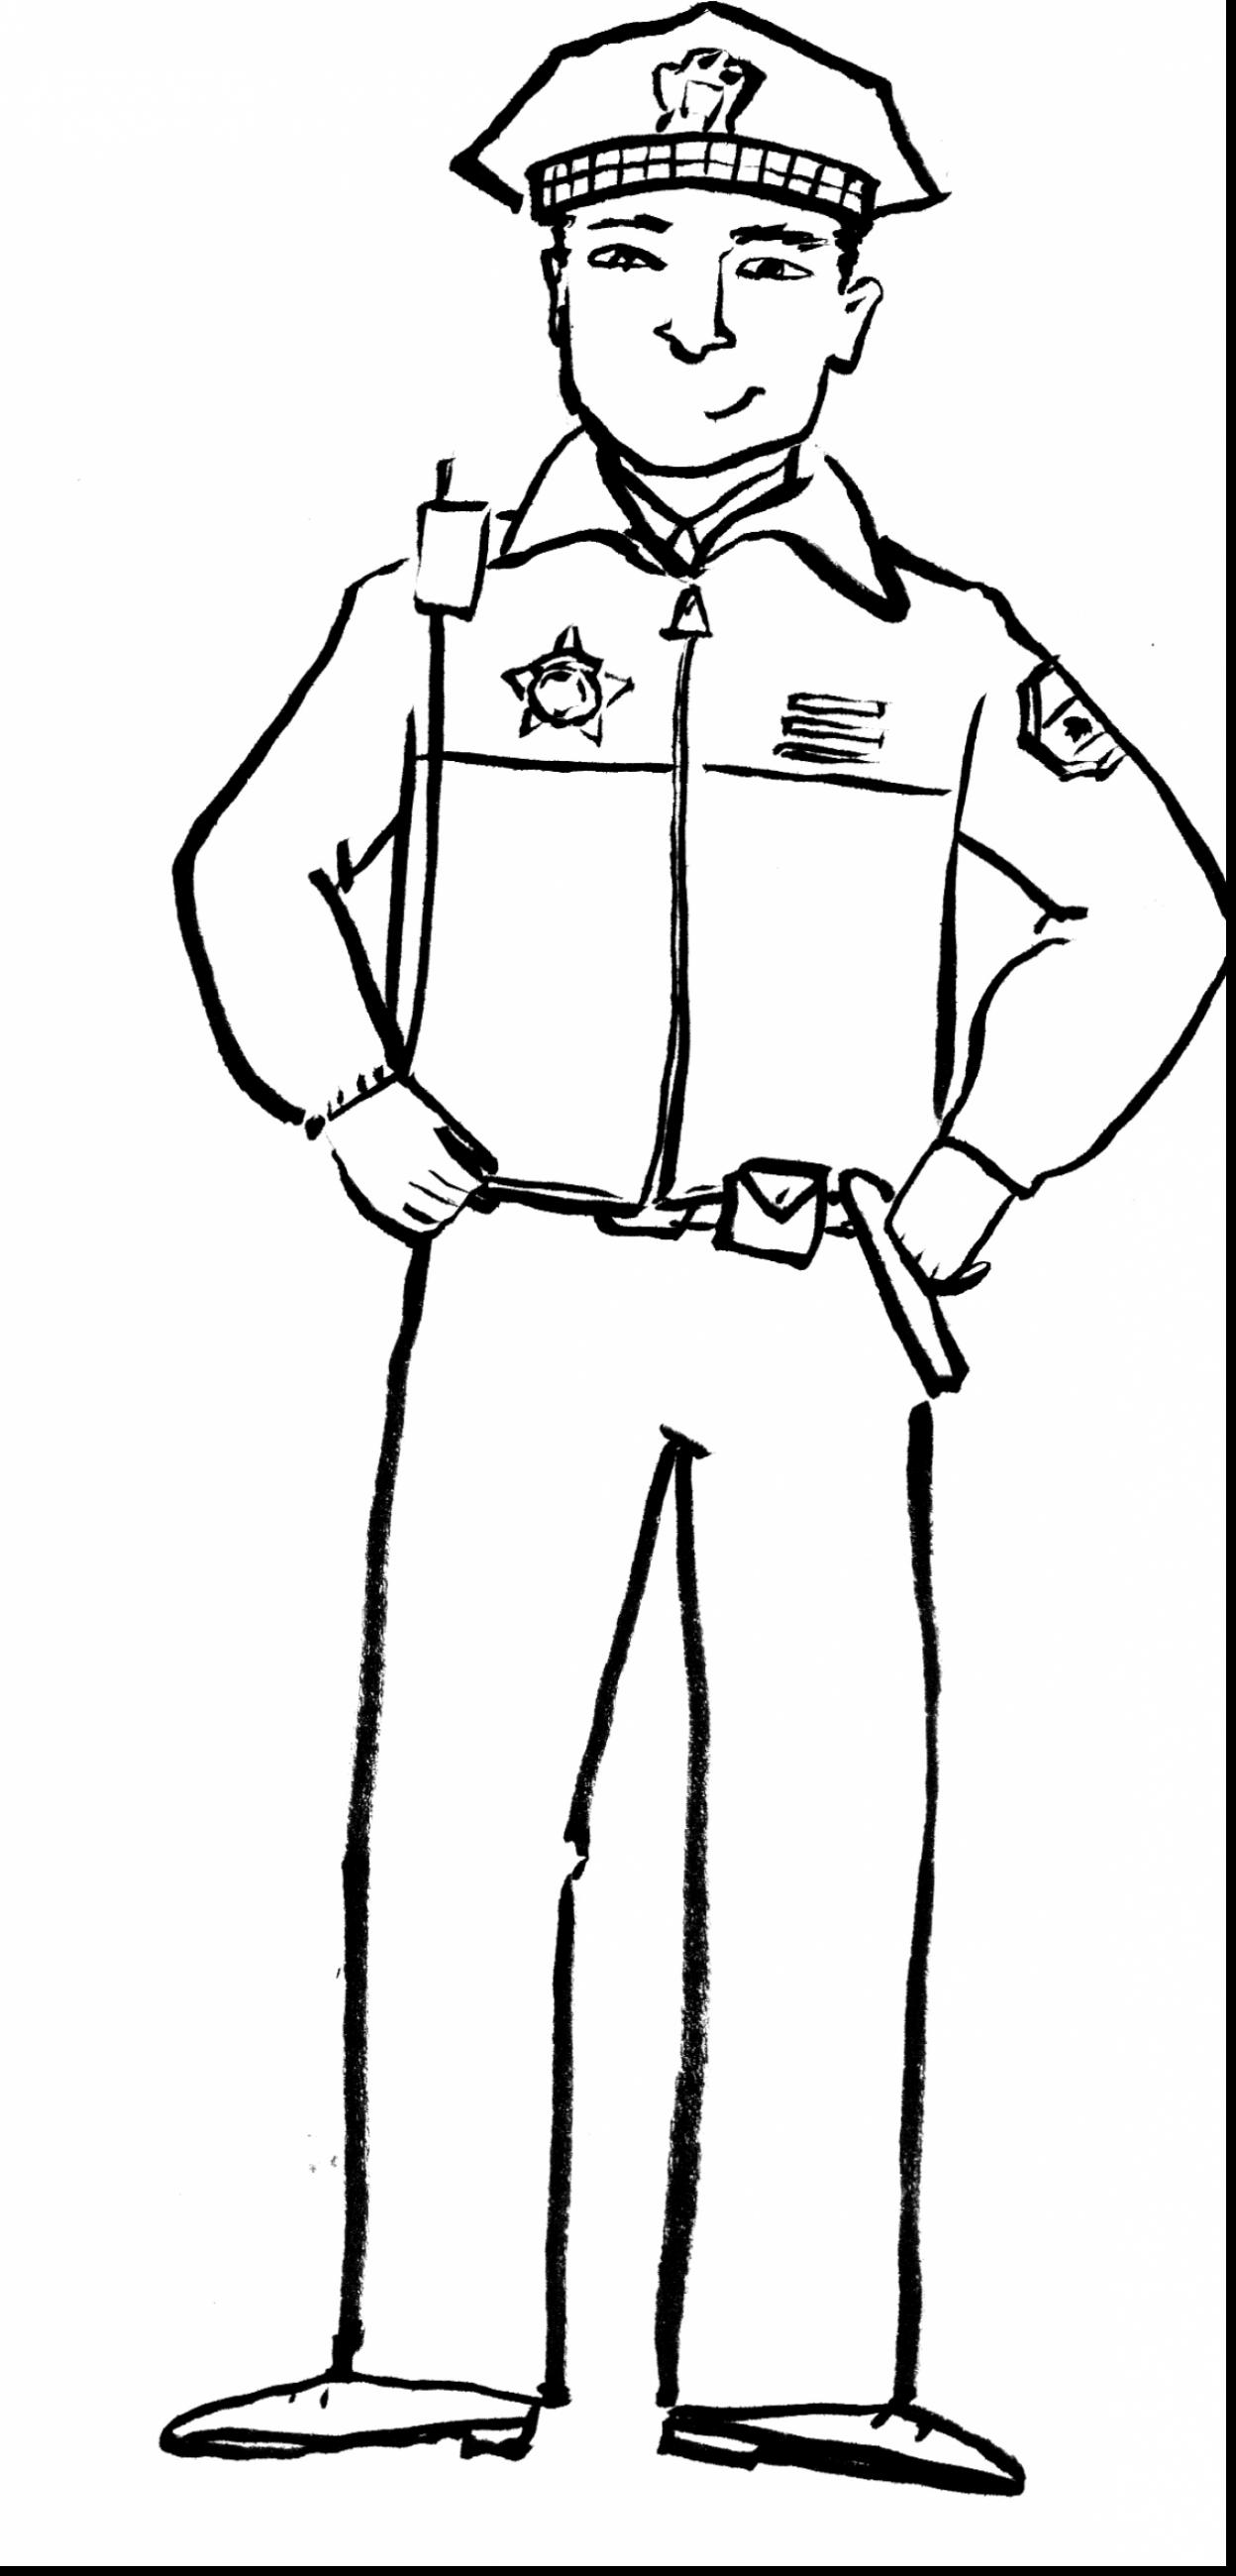 officer buckle and gloria coloring pages our classroom rules starring officer buckle and gloria buckle gloria officer pages and coloring